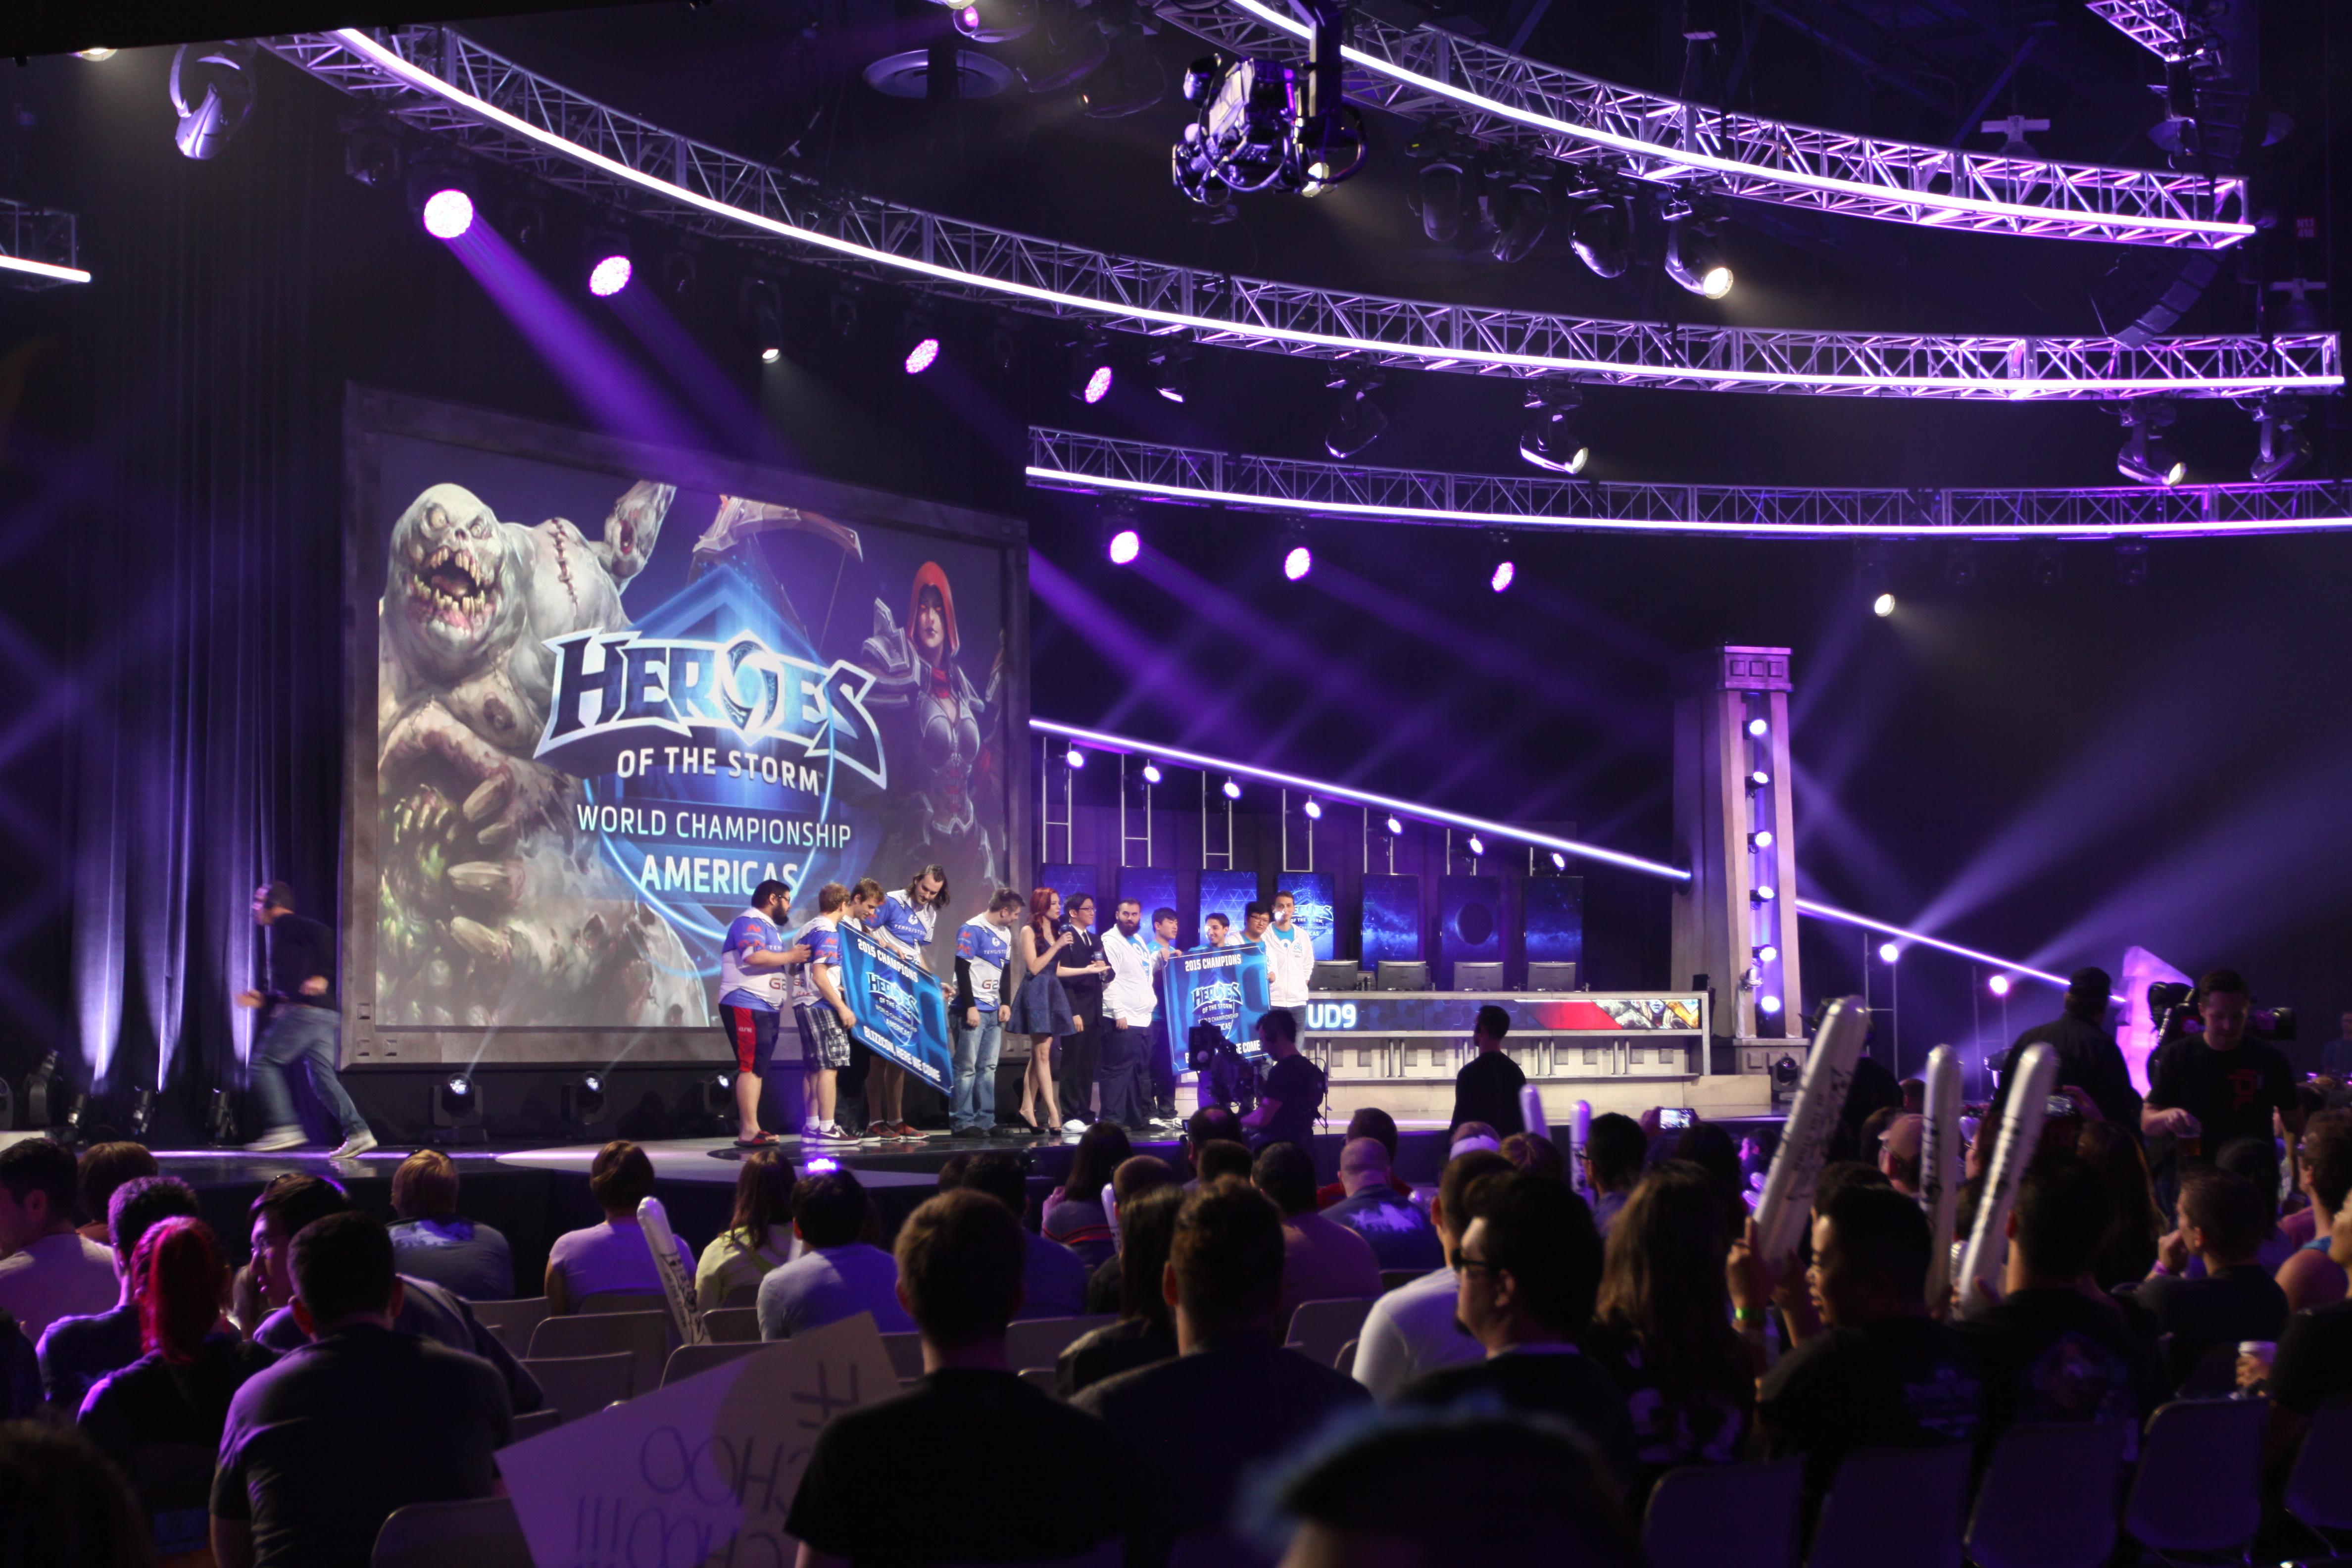 Heroes of the Storm Americas Championships